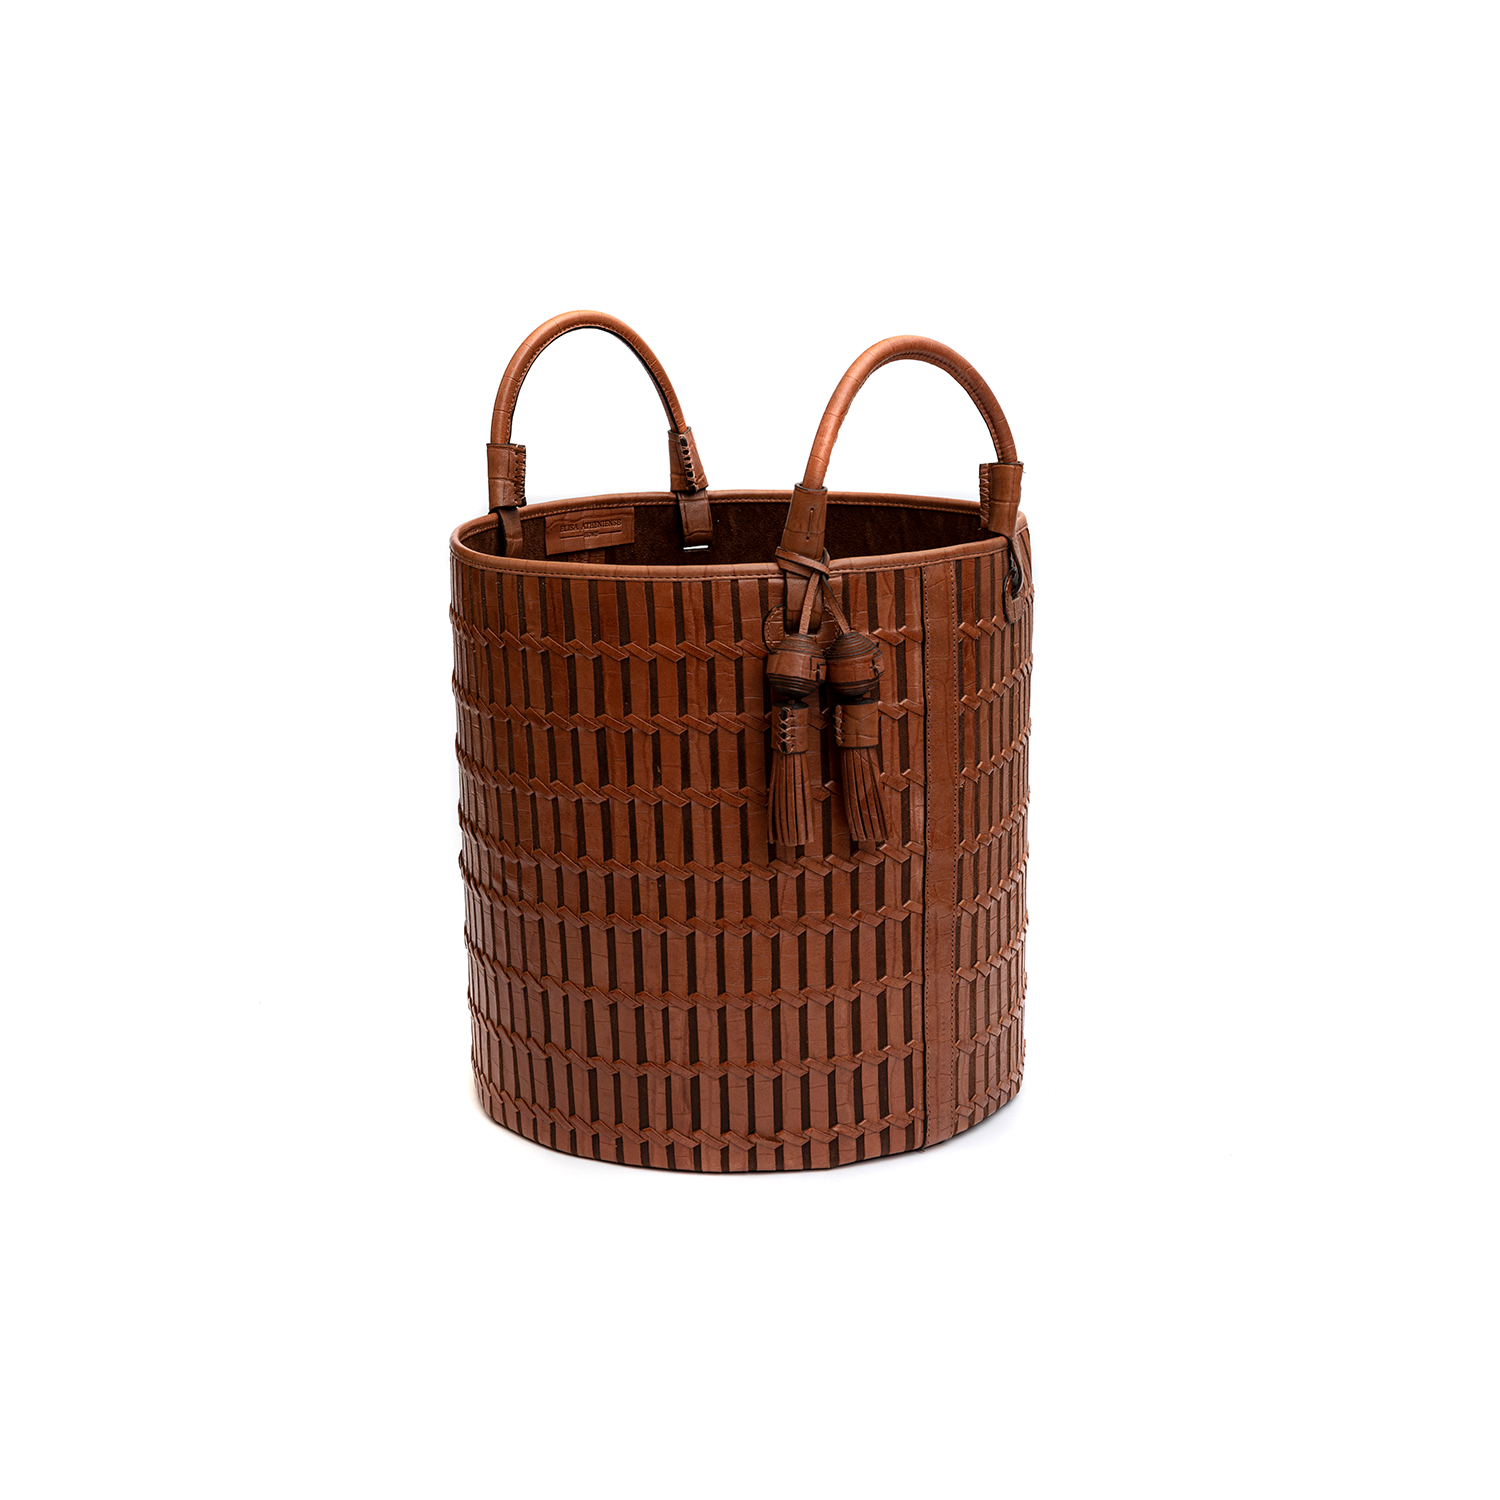 Paraty Indochina Croco Woven Leather Basket - Paraty Indochina Croco Woven Leather Basket is designed to complement an ambient with natural and sophisticated feeling, ideal when placed next your sofa or bed, perfect for magazines and throws storage. Elisa Atheniense woven leather pieces, are handmade and manufactured in Brazil using an exclusive treated leather that brings the soft feel and touch to every single piece. Elisa Atheniense Home Baskets have a delicate tassel attached.   The baskets are available in three sizes. Bespoke sizes are also available under project request as well as colours, see colour chart for reference. | Matter of Stuff